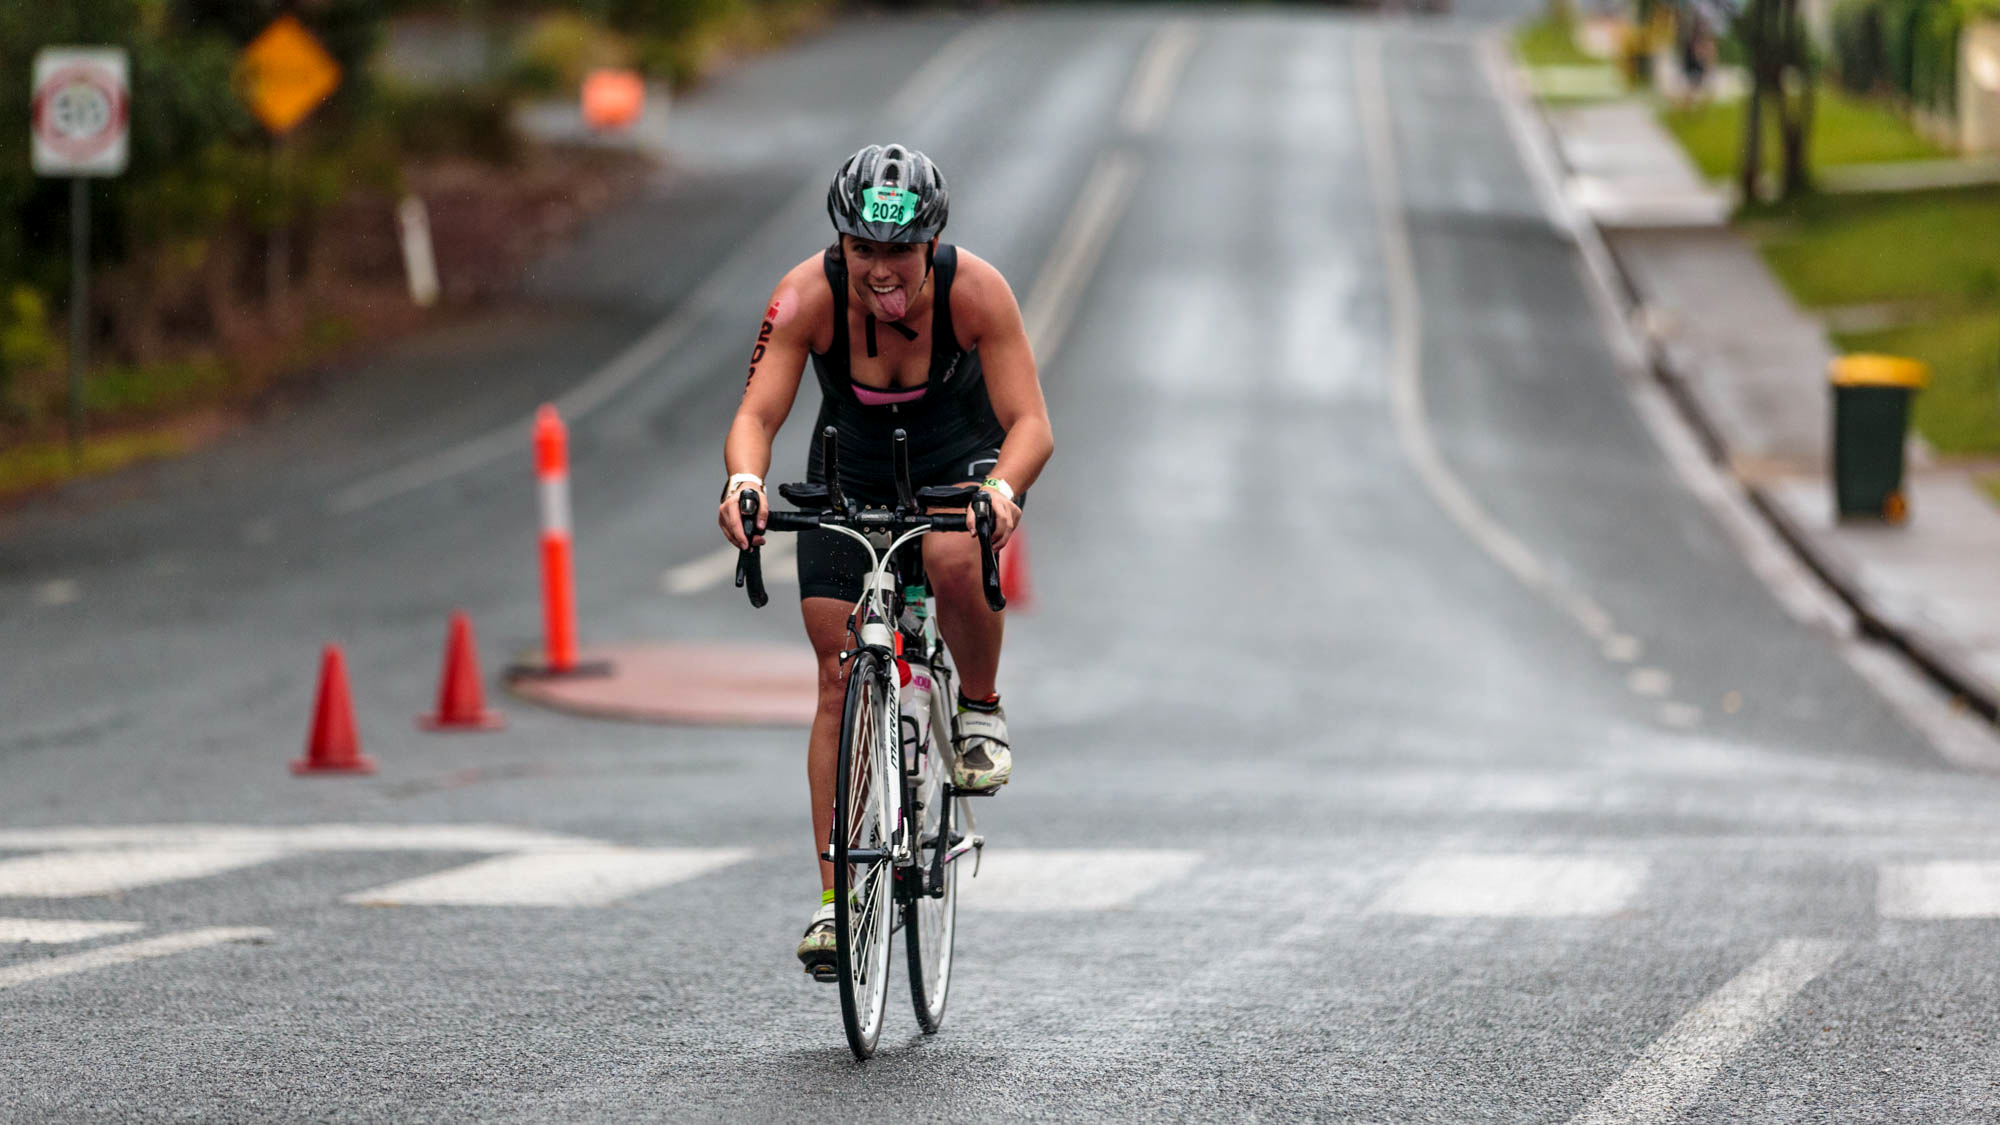 Personifying the spirit of the day, Demi Greentree, an Ironman 70.3 competitor, in the pouring rain with a 10km cycle and half marathon still to run, produced this great smile.